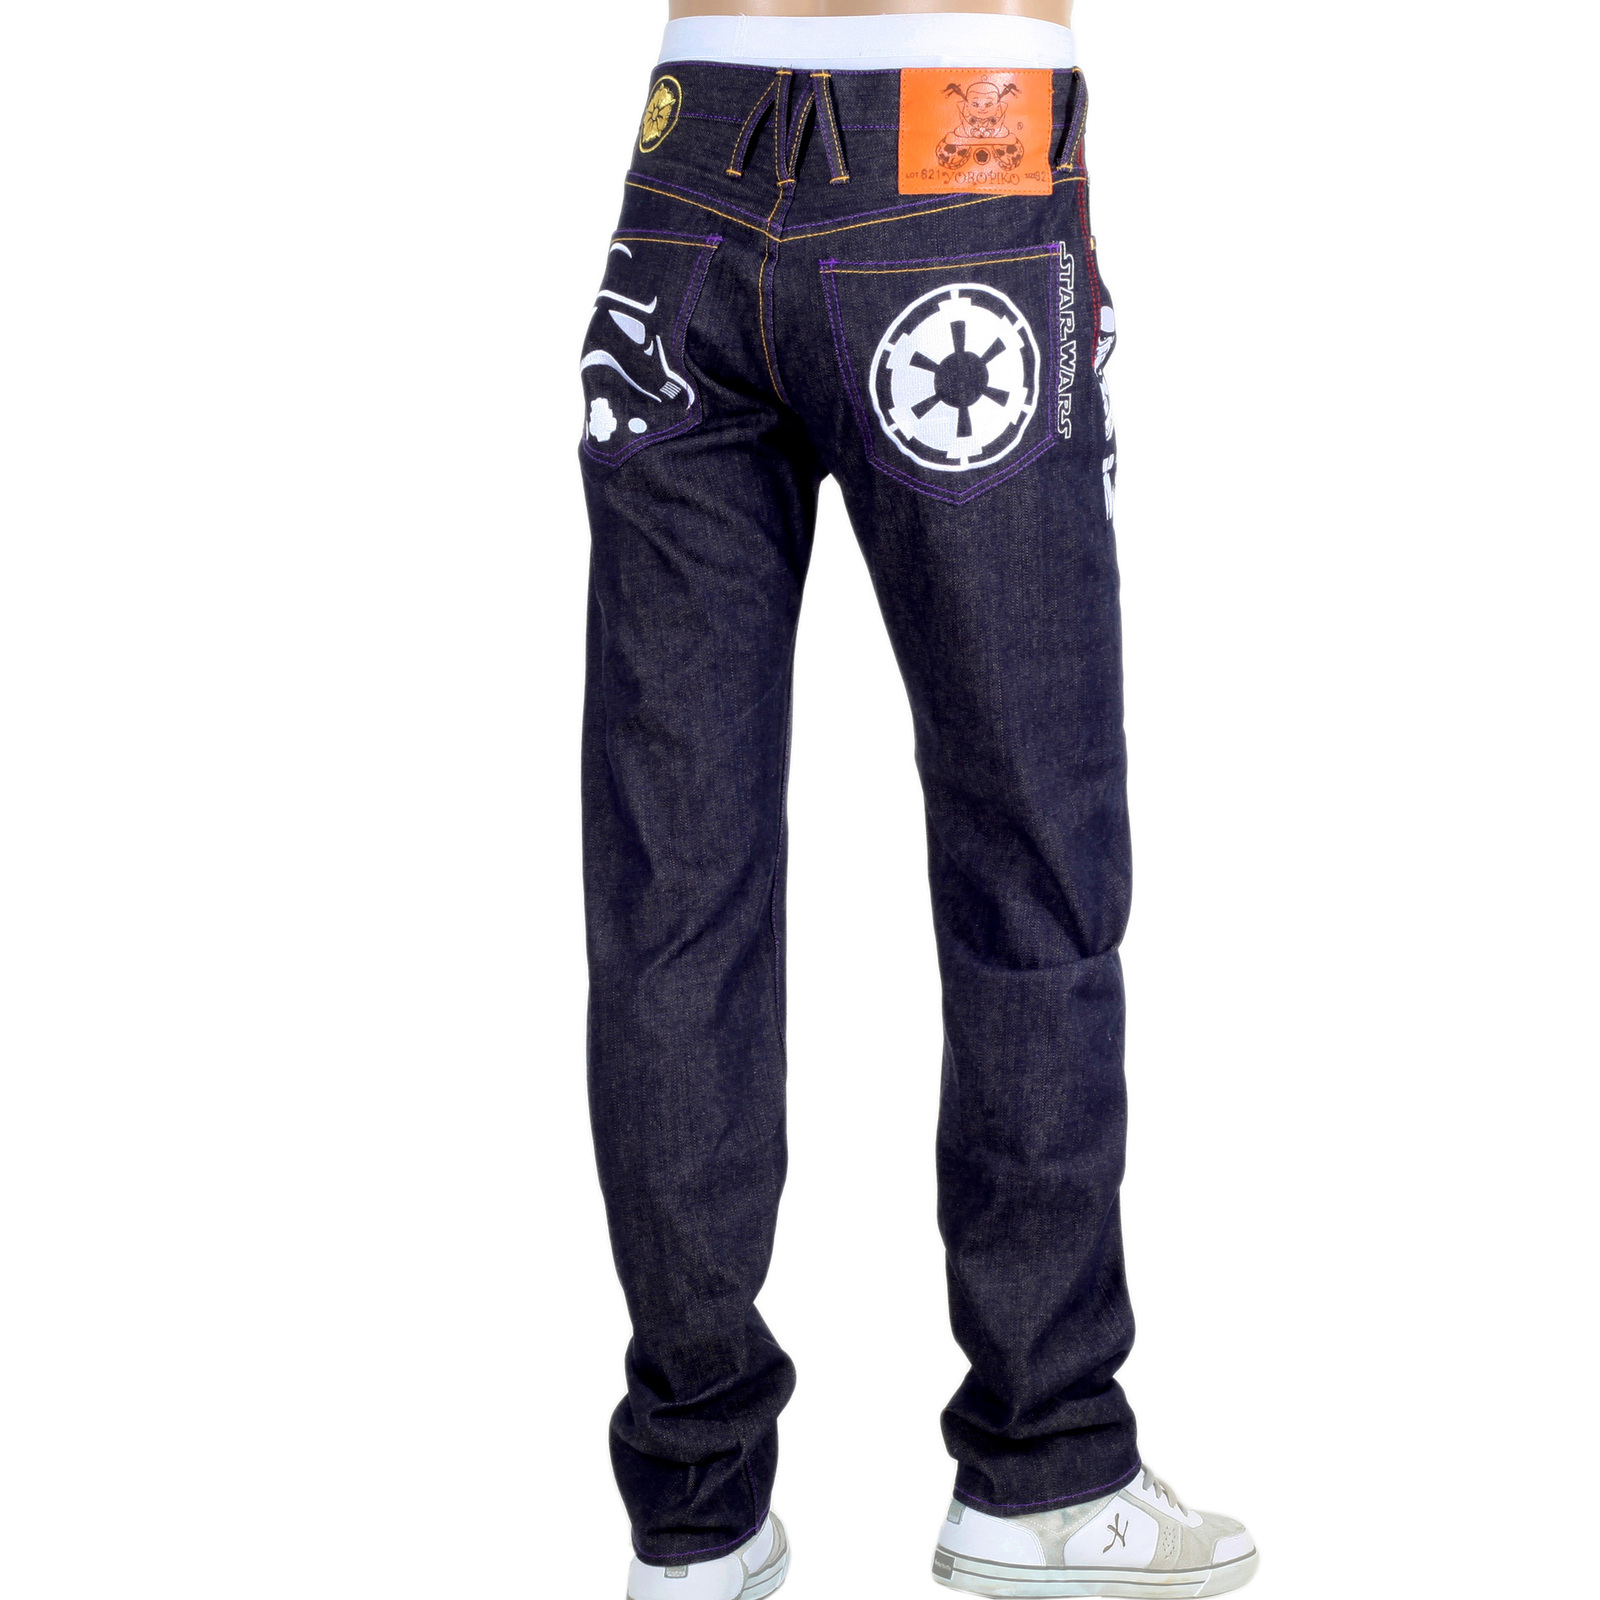 storm the style with star wars yoropiko jeans for men